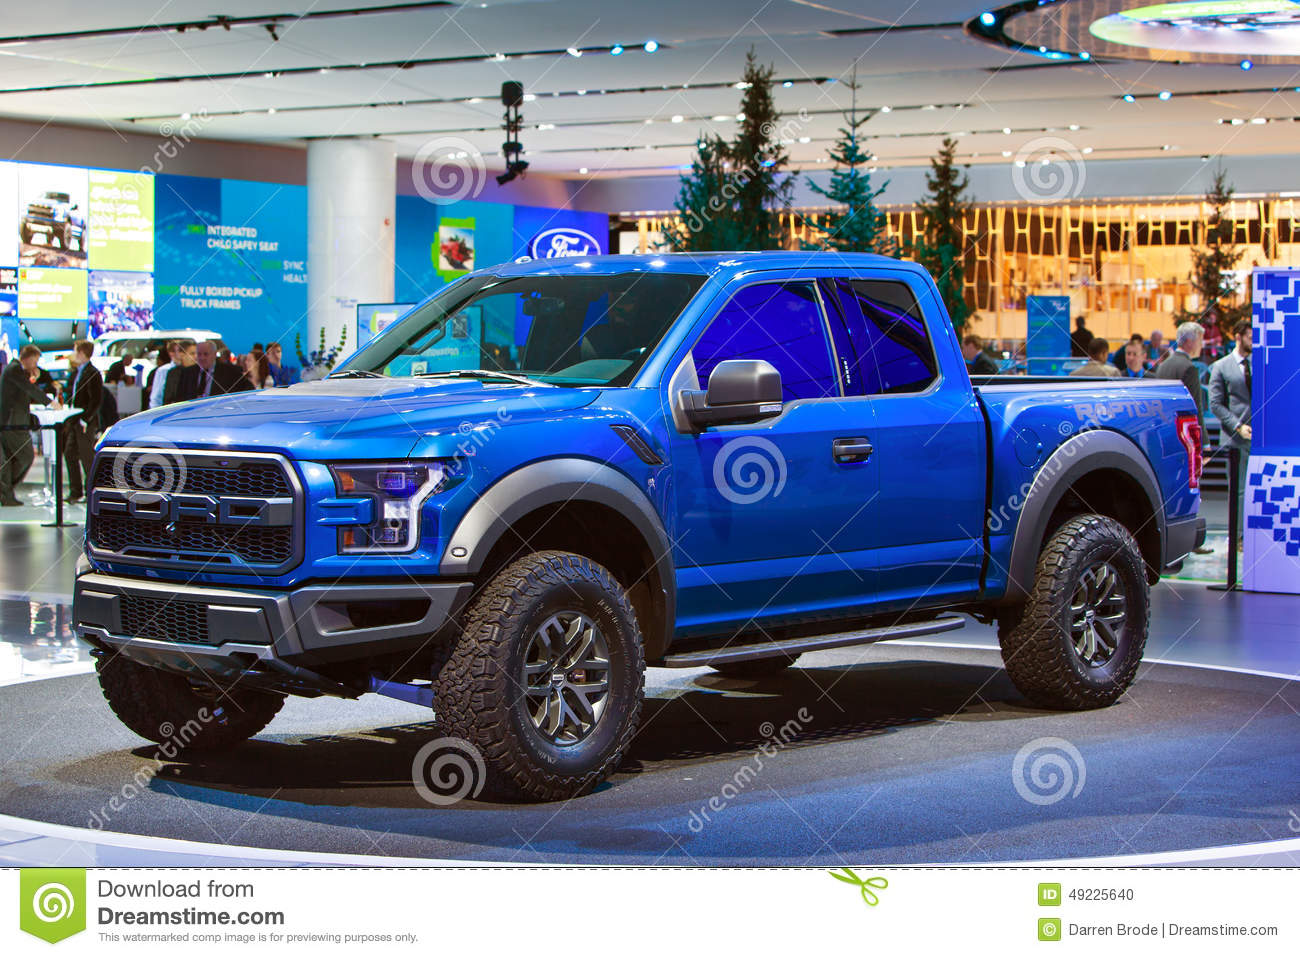 salon de l 39 auto 2015 de ford raptor pickup truck detroit image ditorial image du exhibit. Black Bedroom Furniture Sets. Home Design Ideas